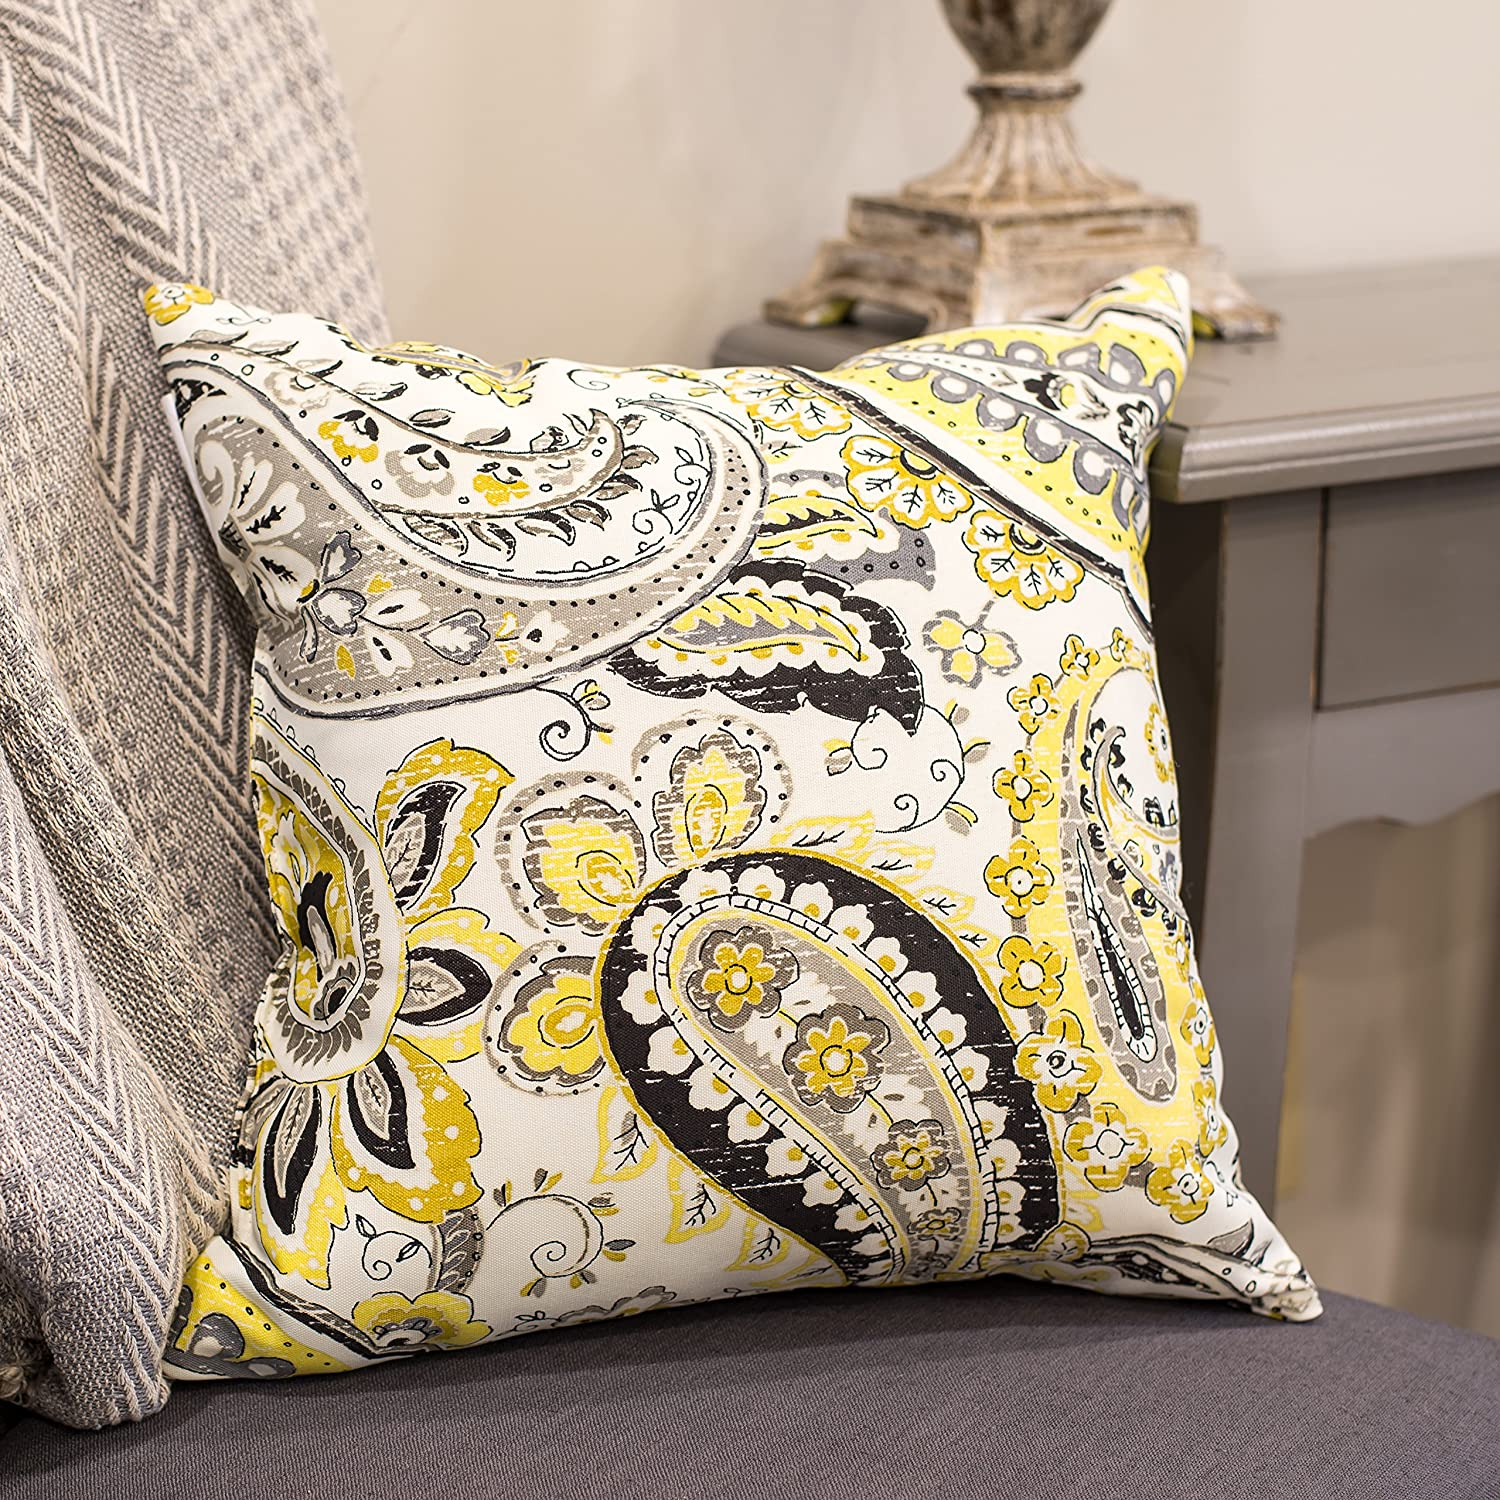 Hadia Goldmine Paisley Grey And Yellow Print 16 X 16 Indoor Outdoor Throw Pillow India House Brass Home Kitchen Decorative Pillows Inserts Covers